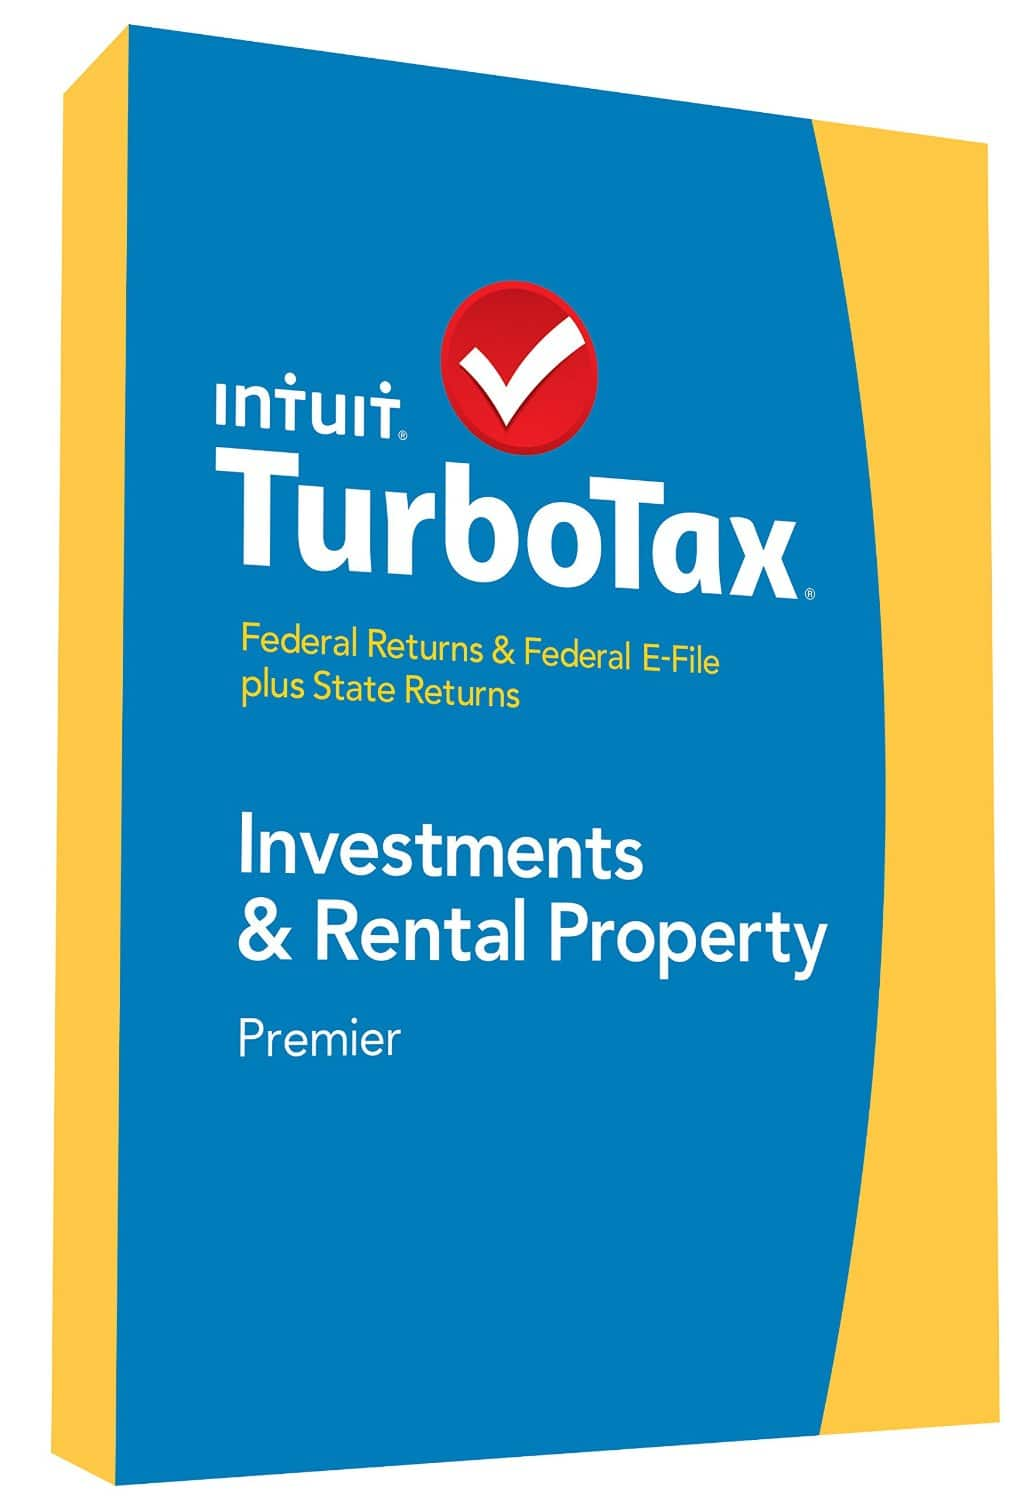 TurboTax Premier 2014 Fed + State + Fed Efile + Refund Bonus for $59.99 Amazon Discount, $54.99 for Costco member